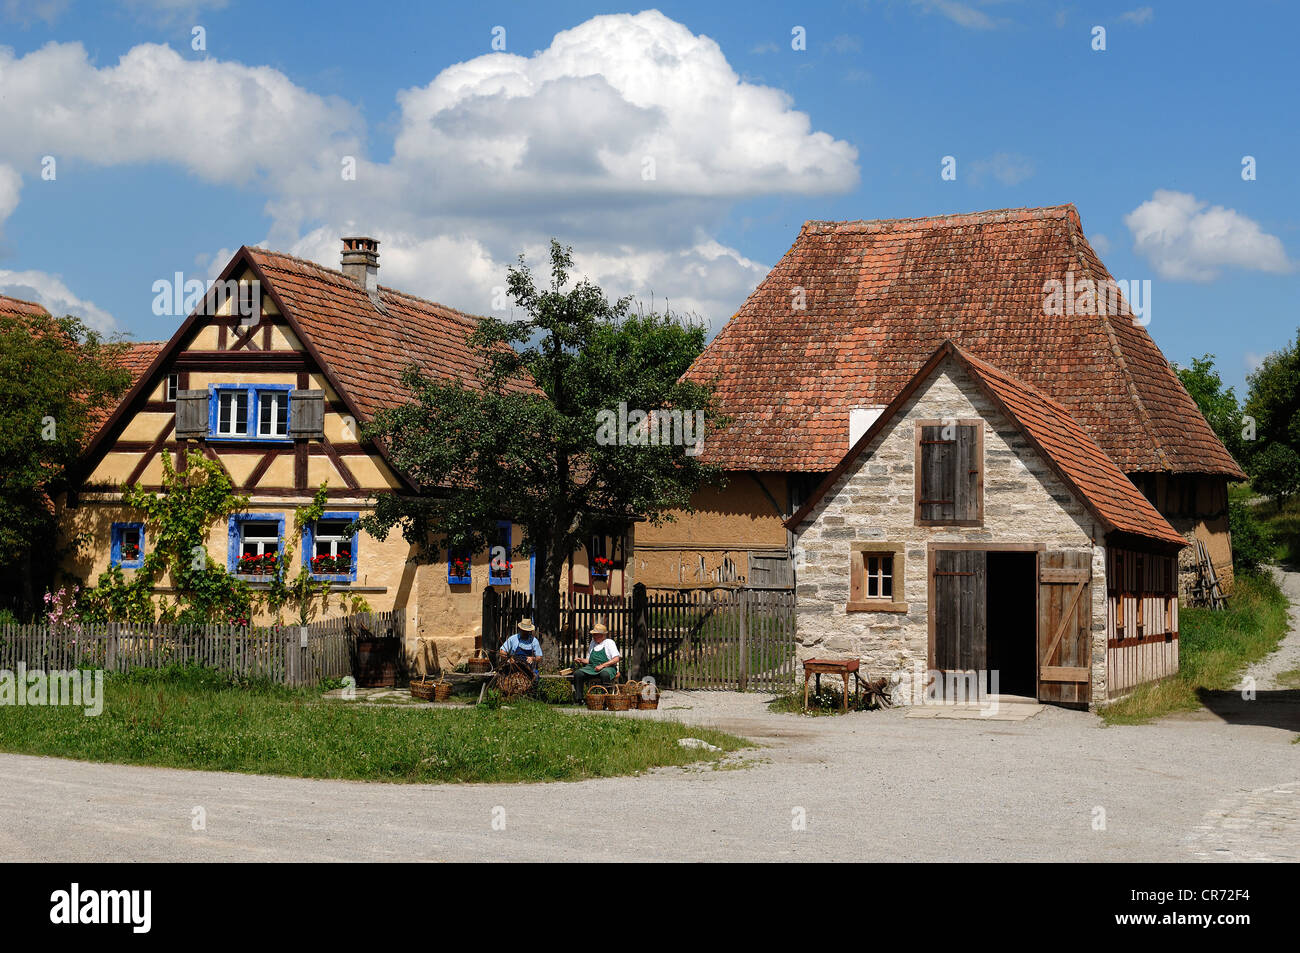 Haeckerhaus building, 1706, left, wheelwright's workshop, 1887, right, barn in the rear, 1590, all from Ergersheim - Stock Image